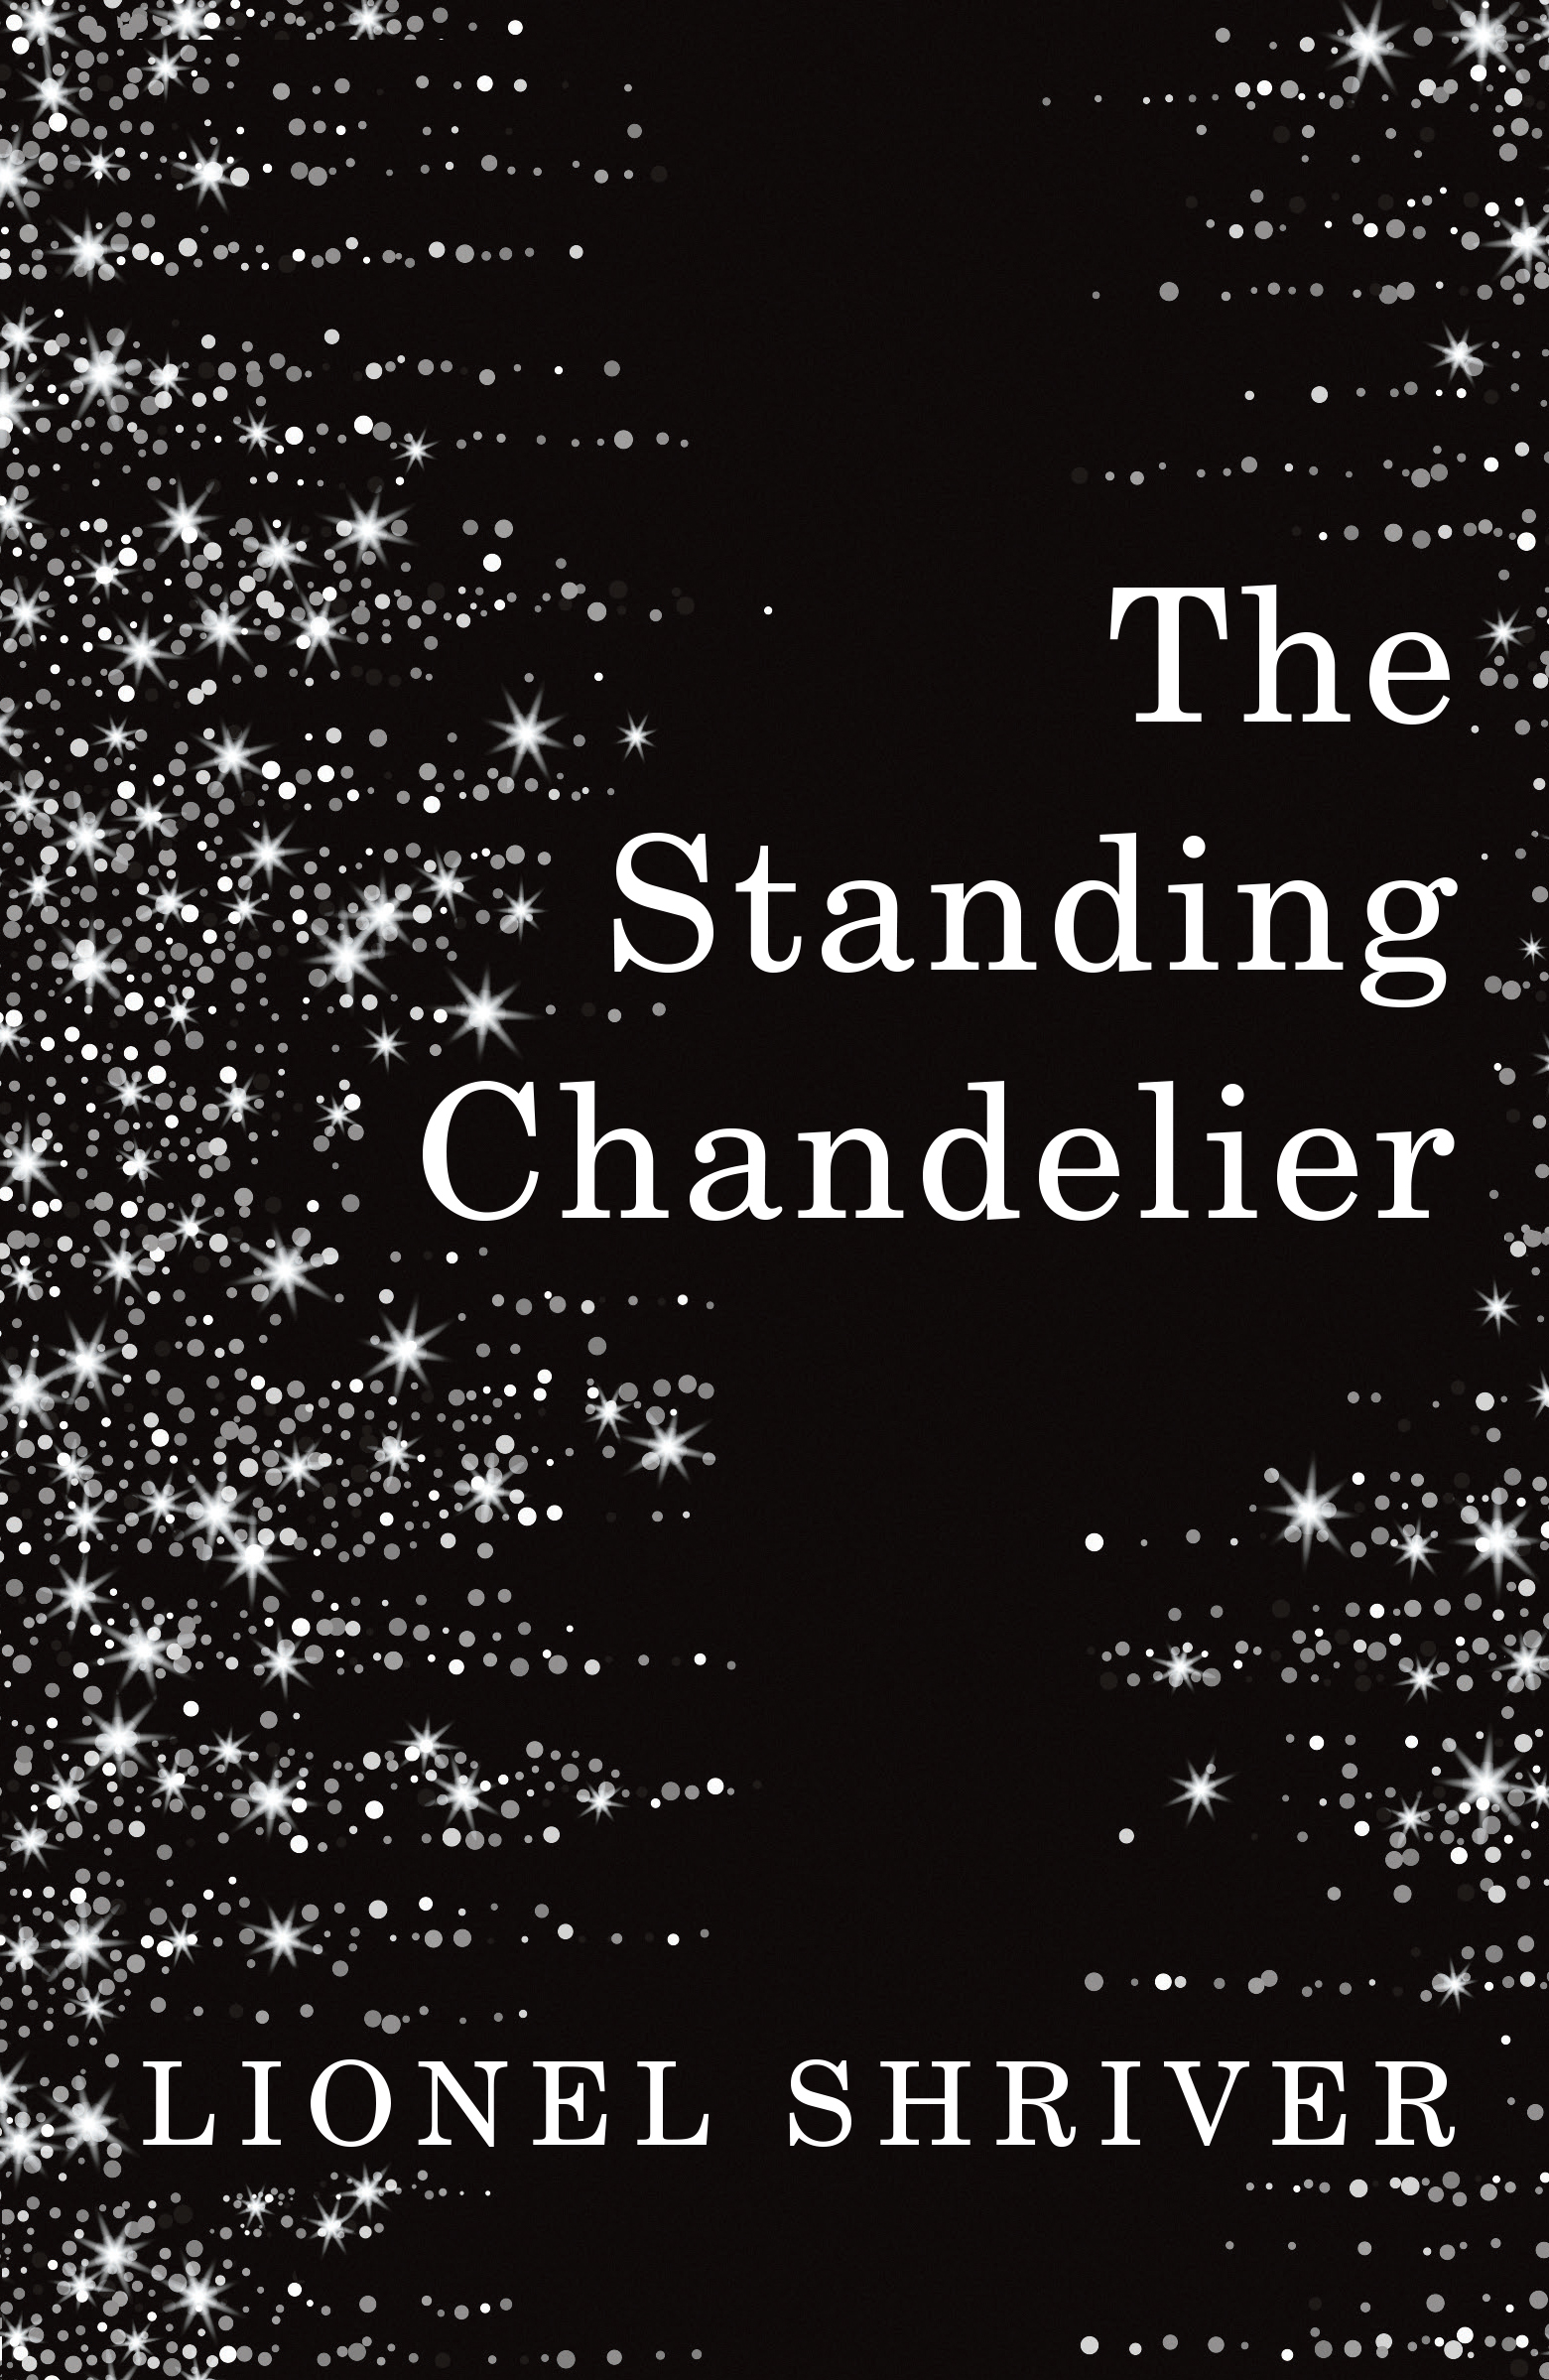 SPINE Holly Macdonald Cover Design for The Standing Chandelier